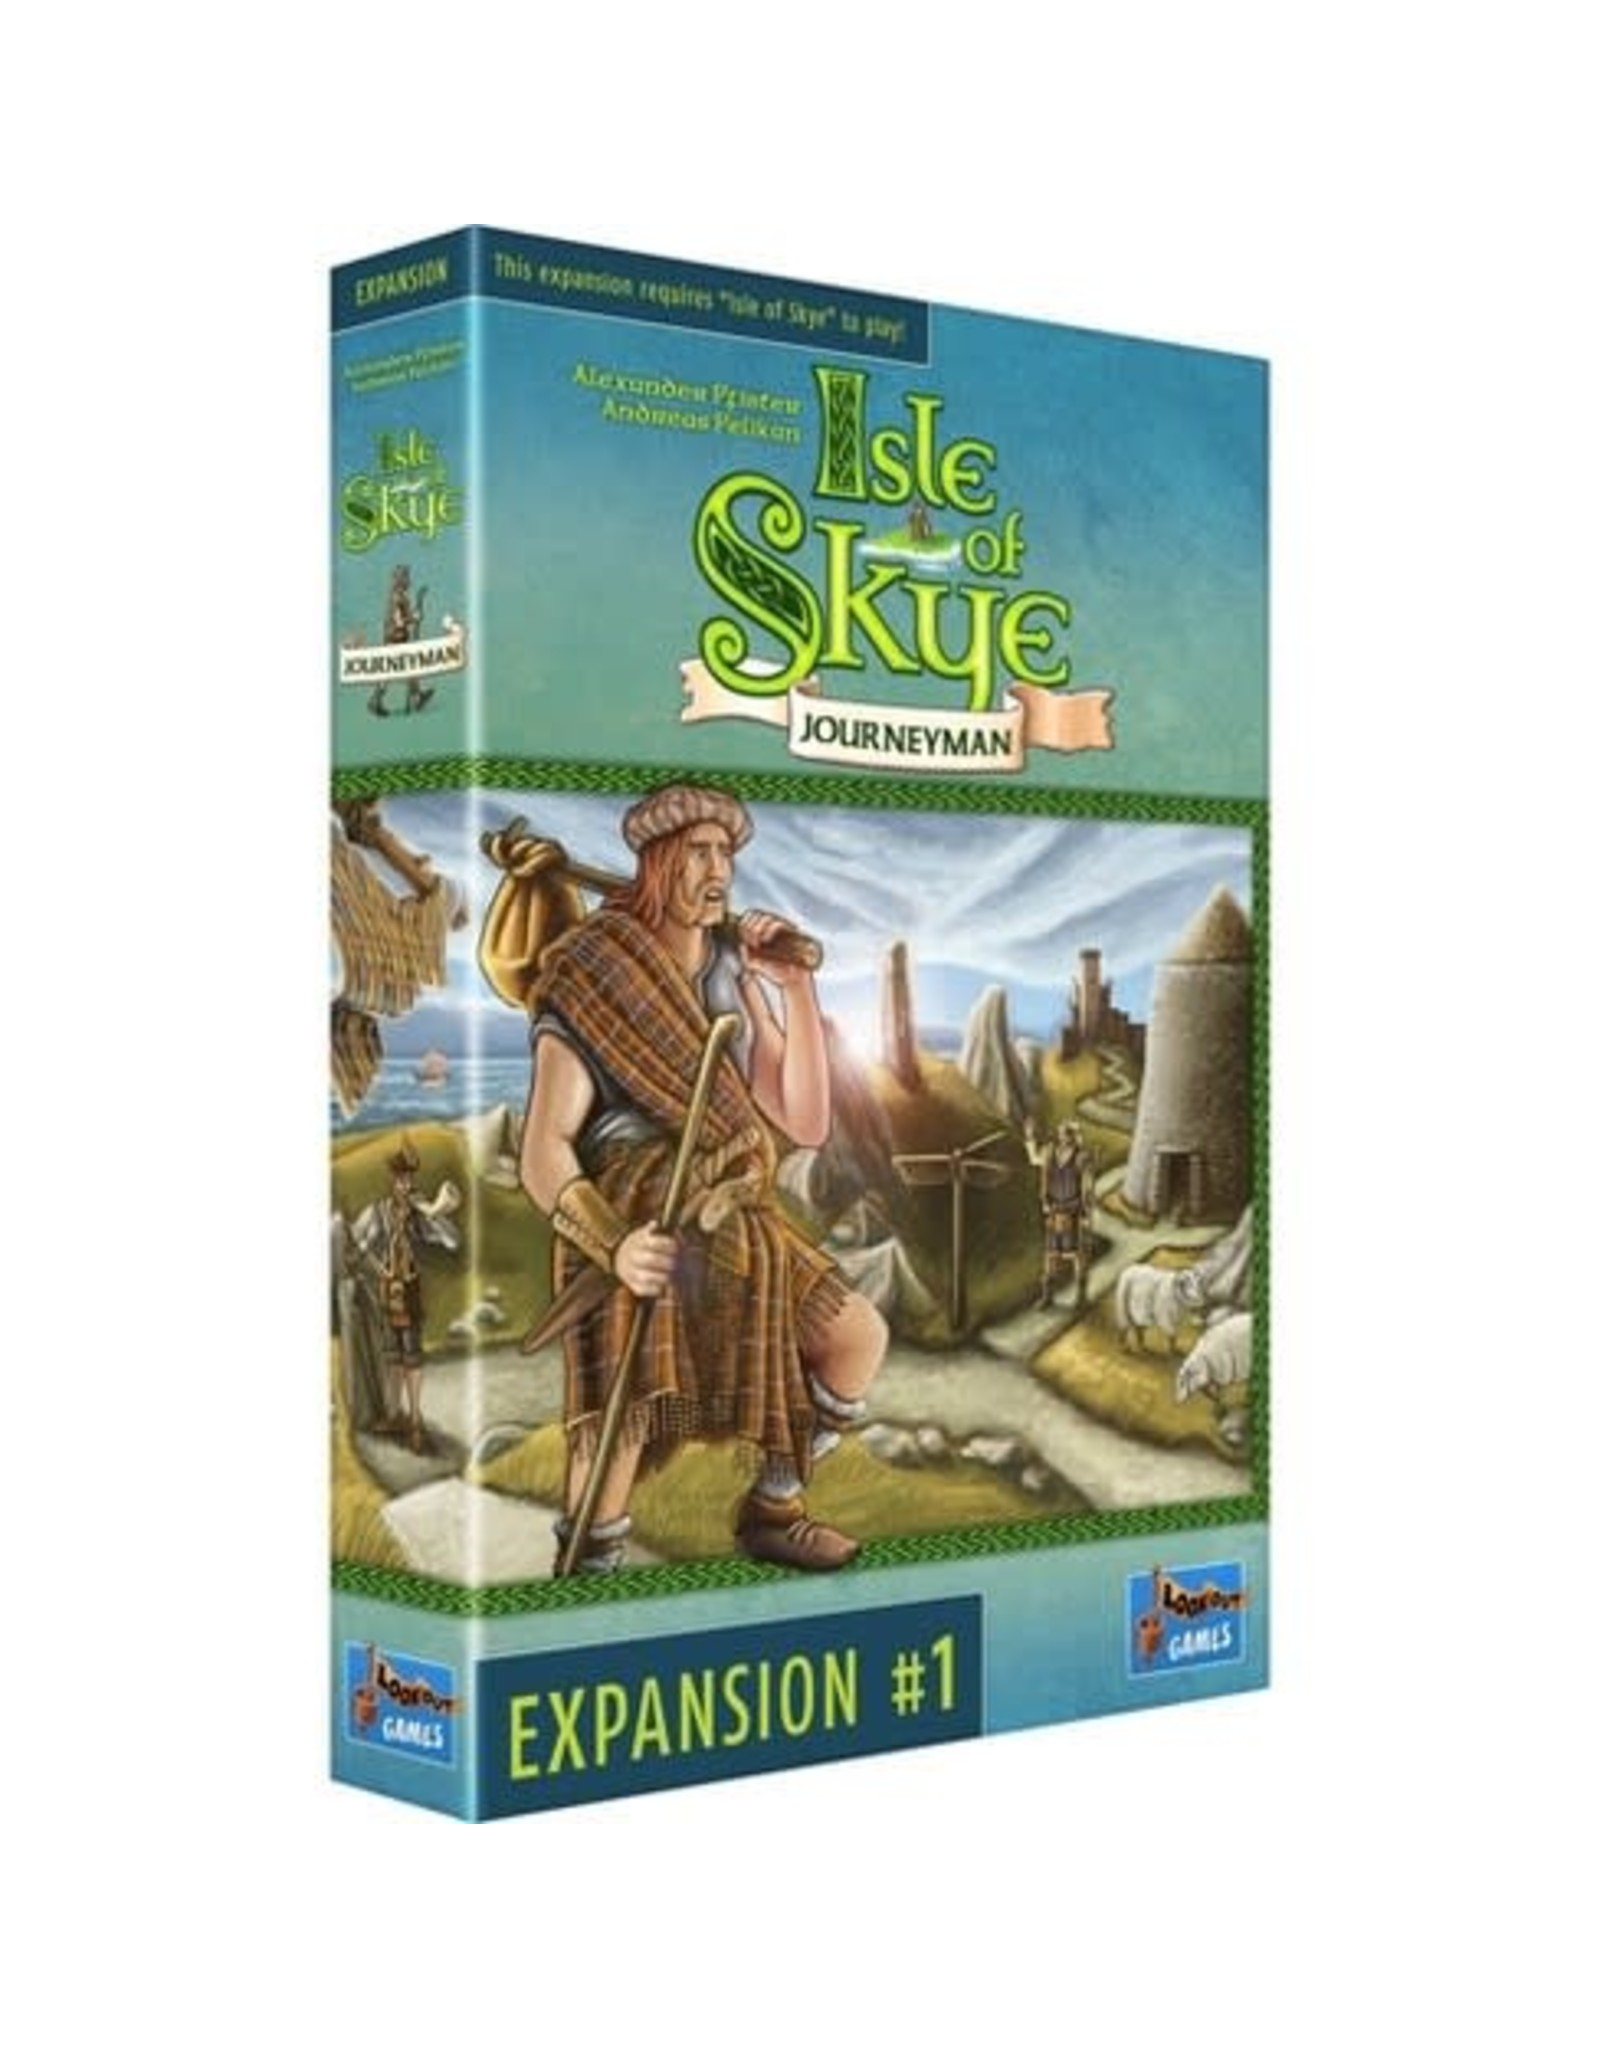 Isle of Skye Journeyman's Expansion